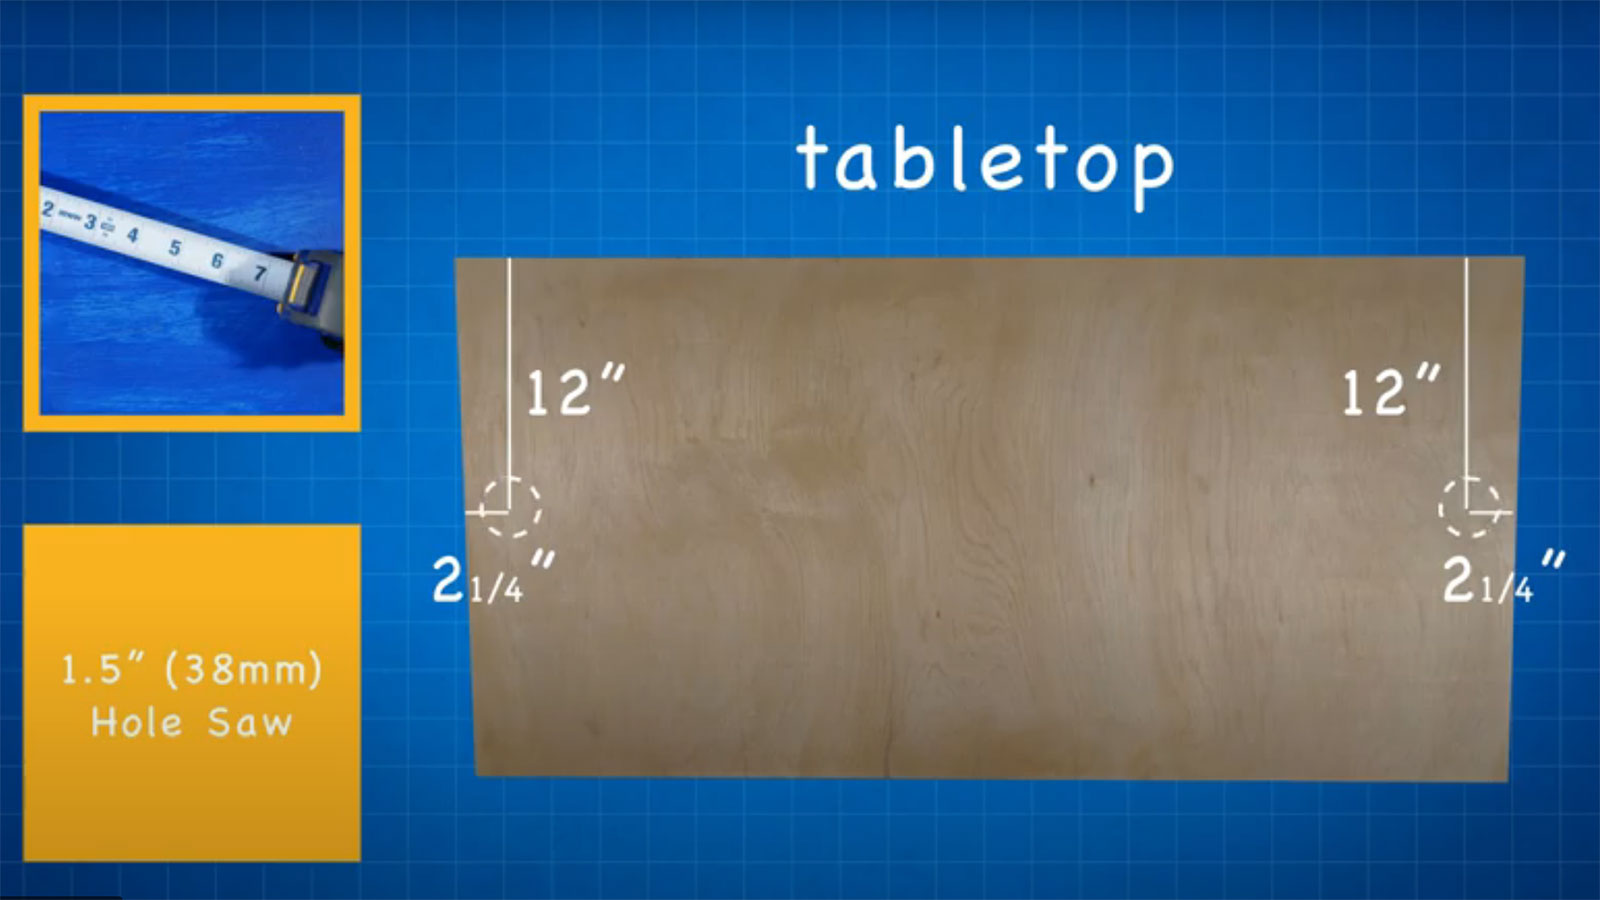 fold-stand-02a